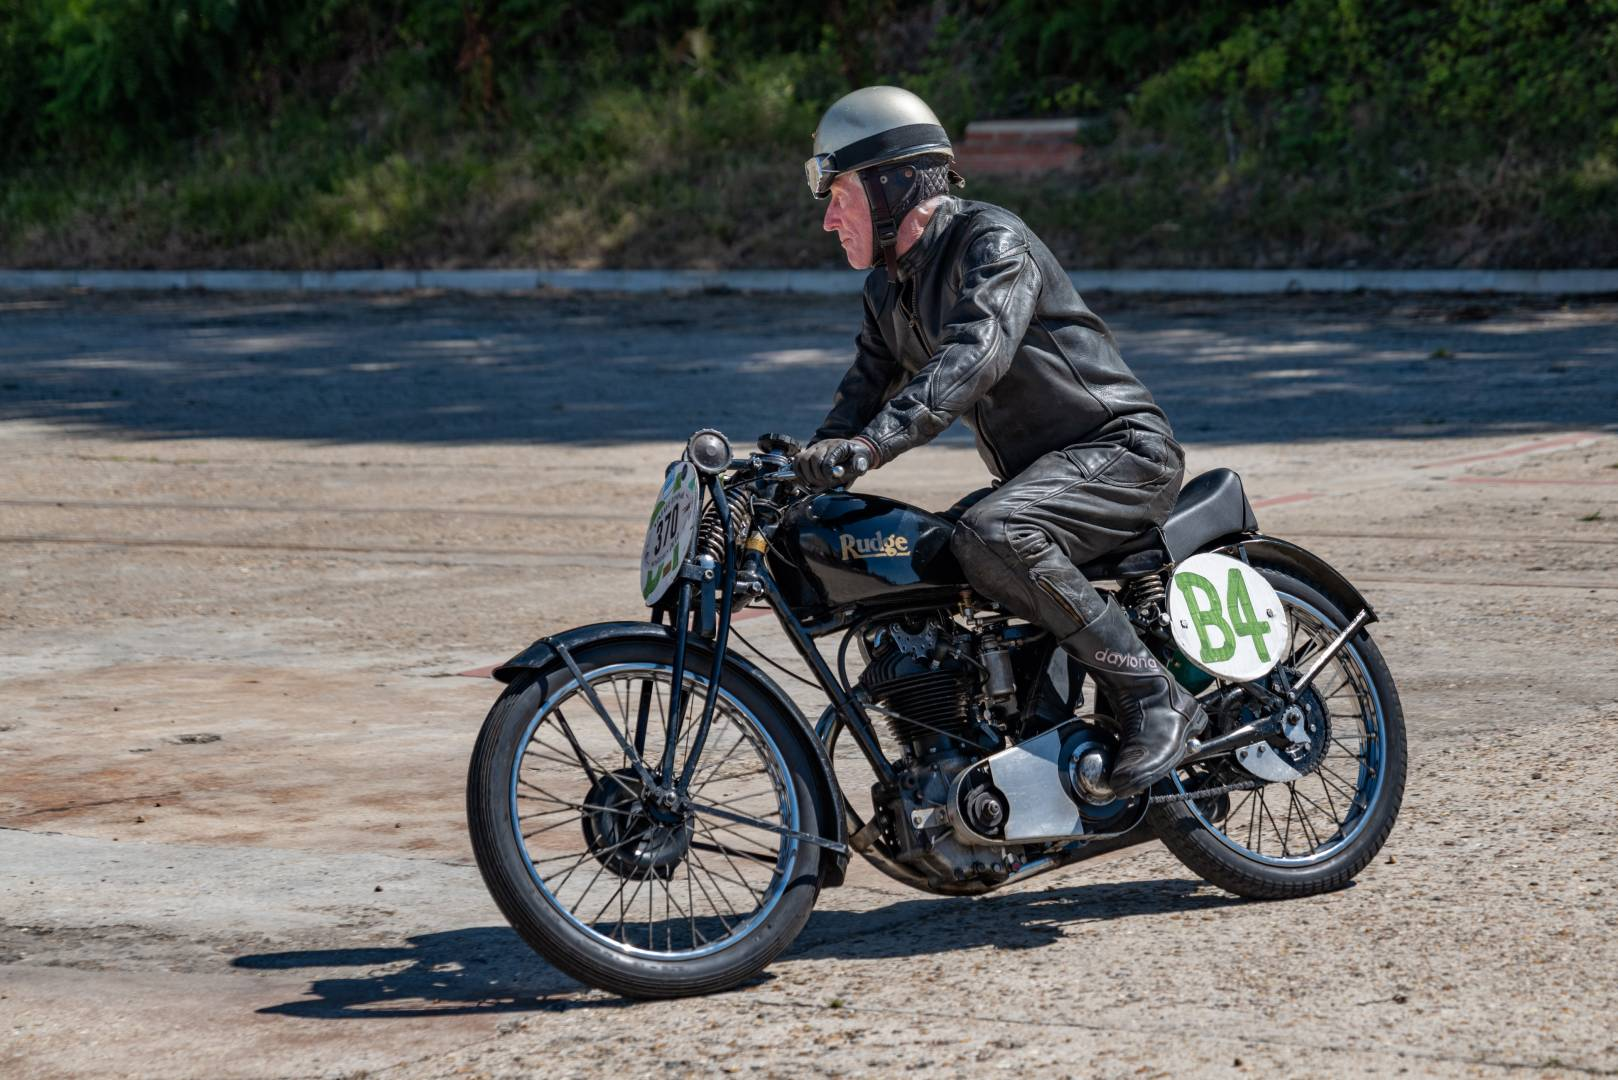 Motorcycle racing as it used to be, a pre-war Rudge, although the rider is dressed more for the late fifties with his one-piece leathers